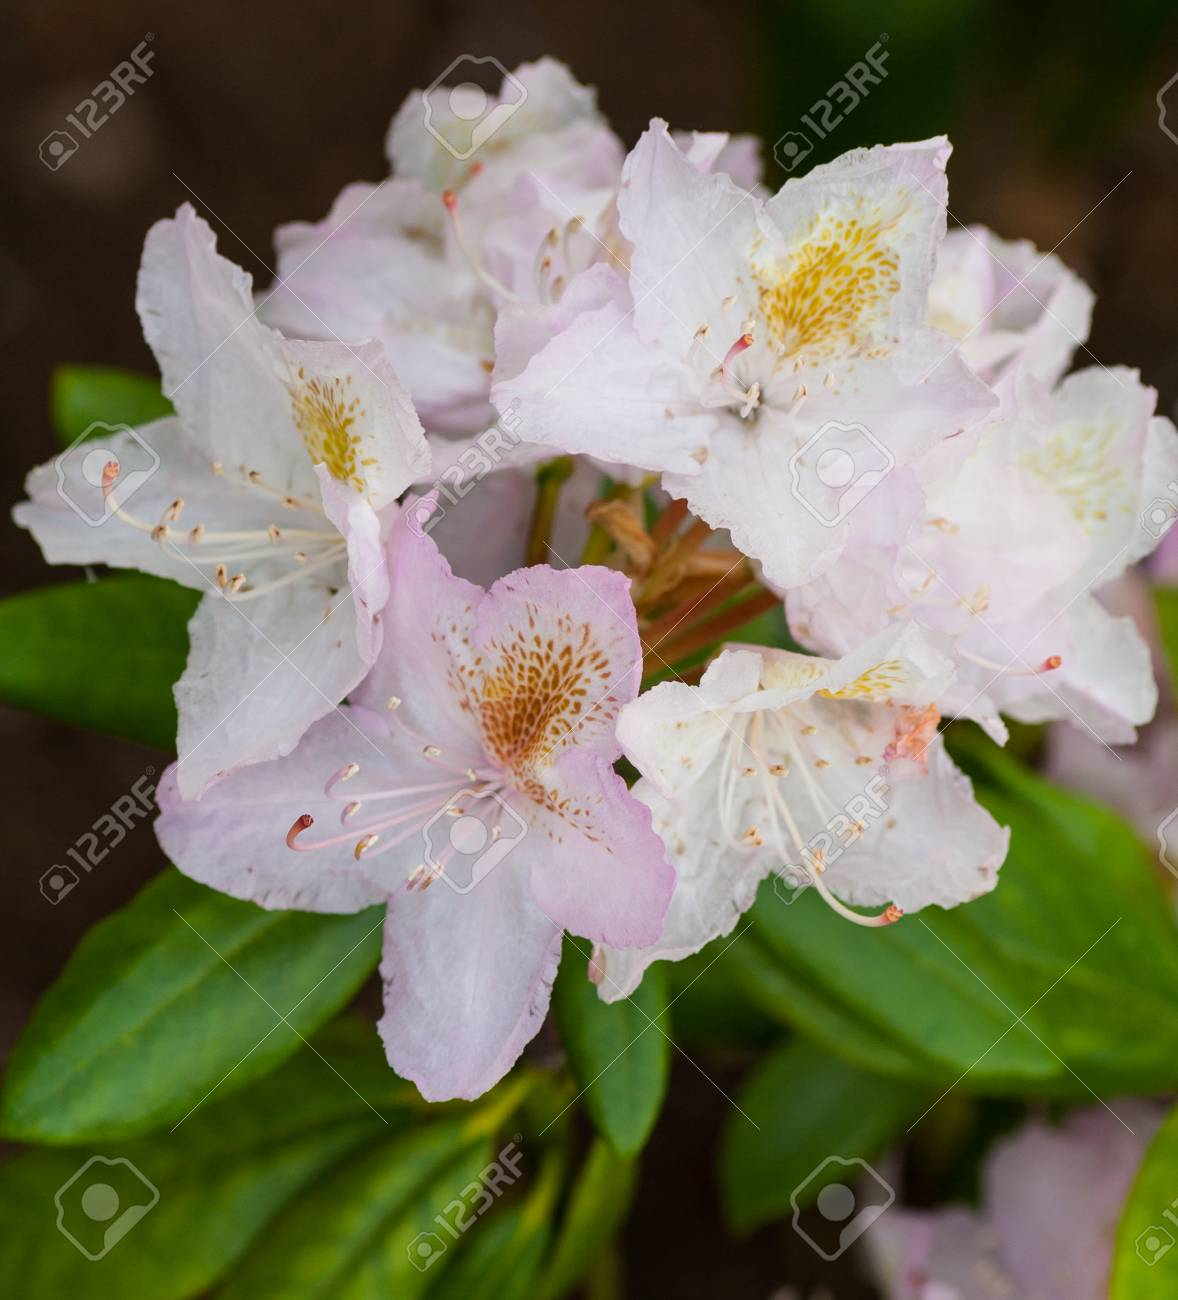 Rhododendron Mikkeli White Pink Bunch Of Flowers Finnish Variety